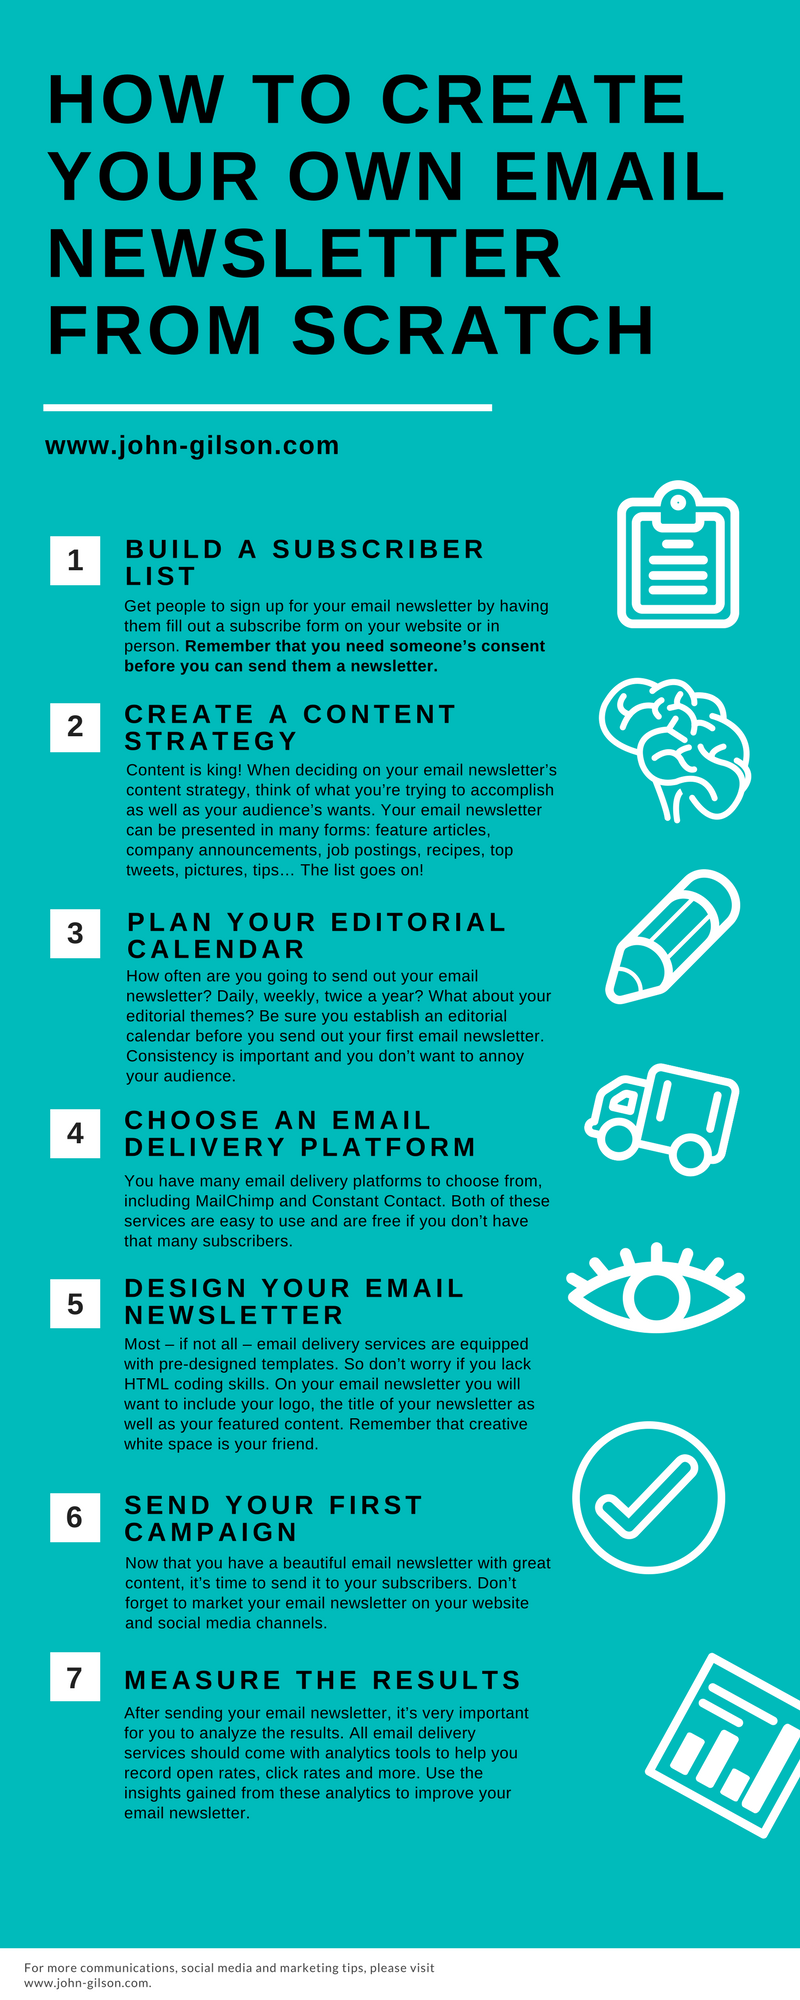 How To Create Your Own Email Newsletter From Scratch  Vision